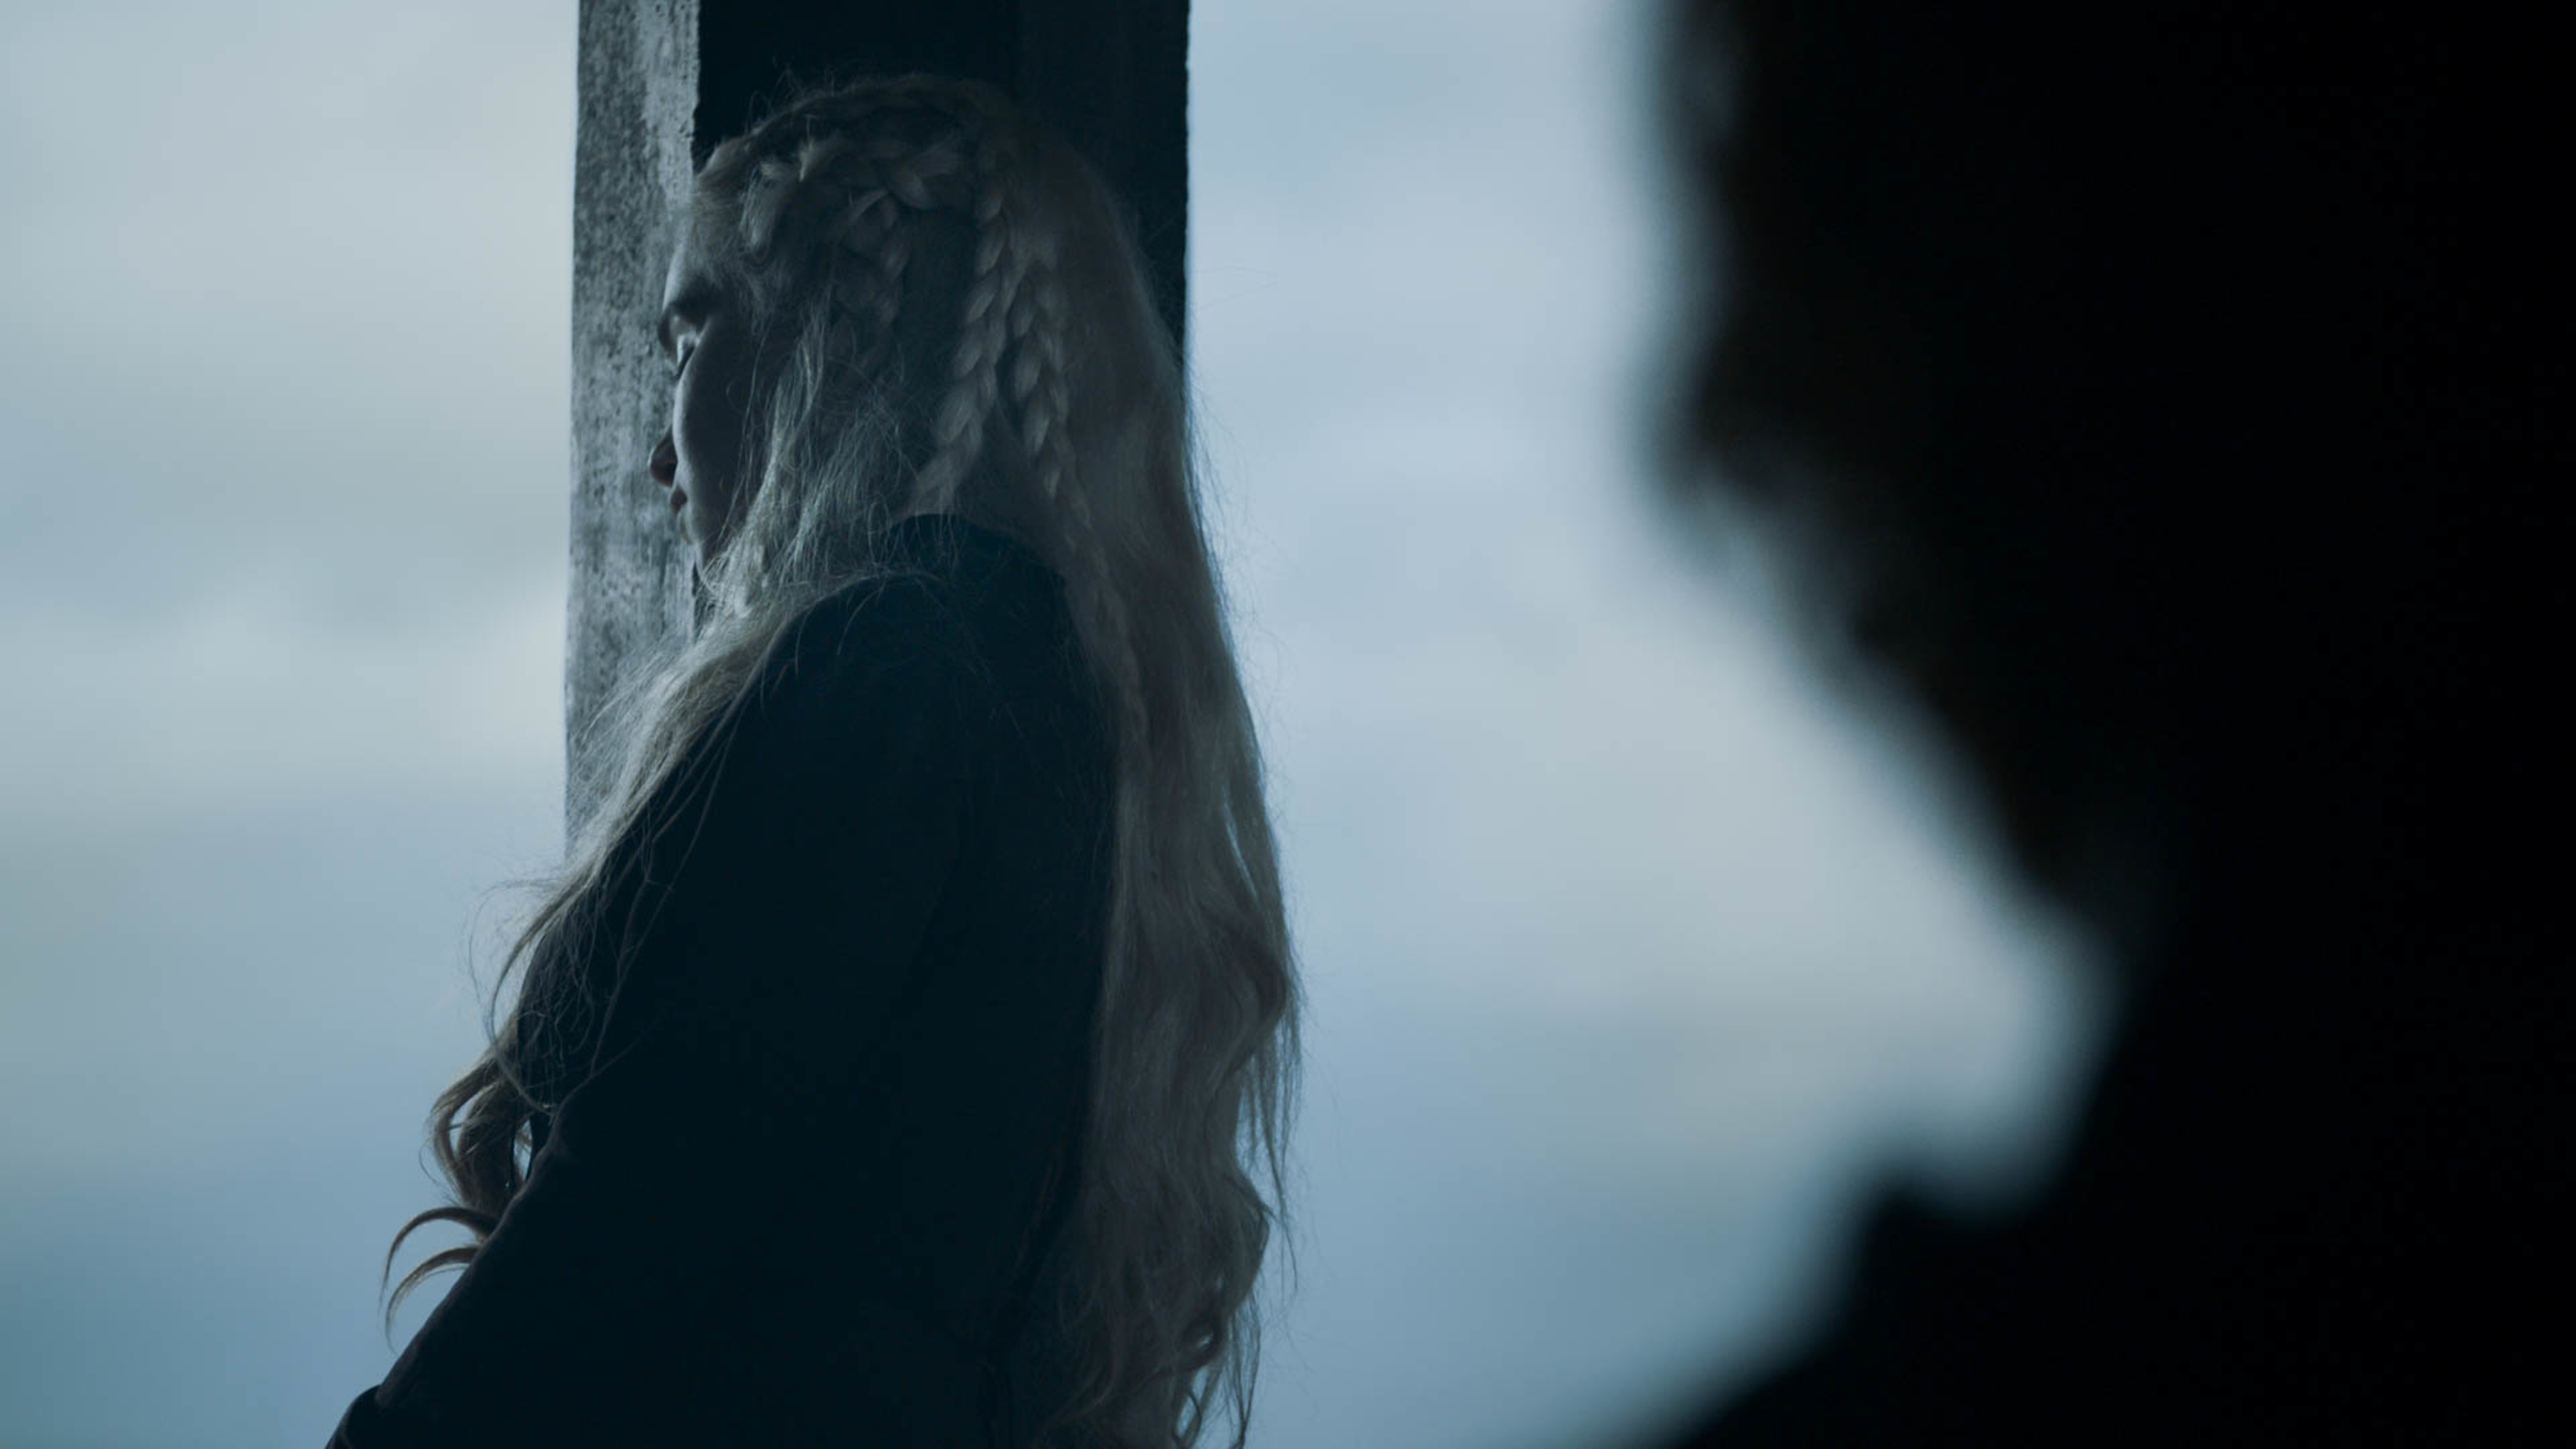 game of thrones soundtrack all seasons torrent